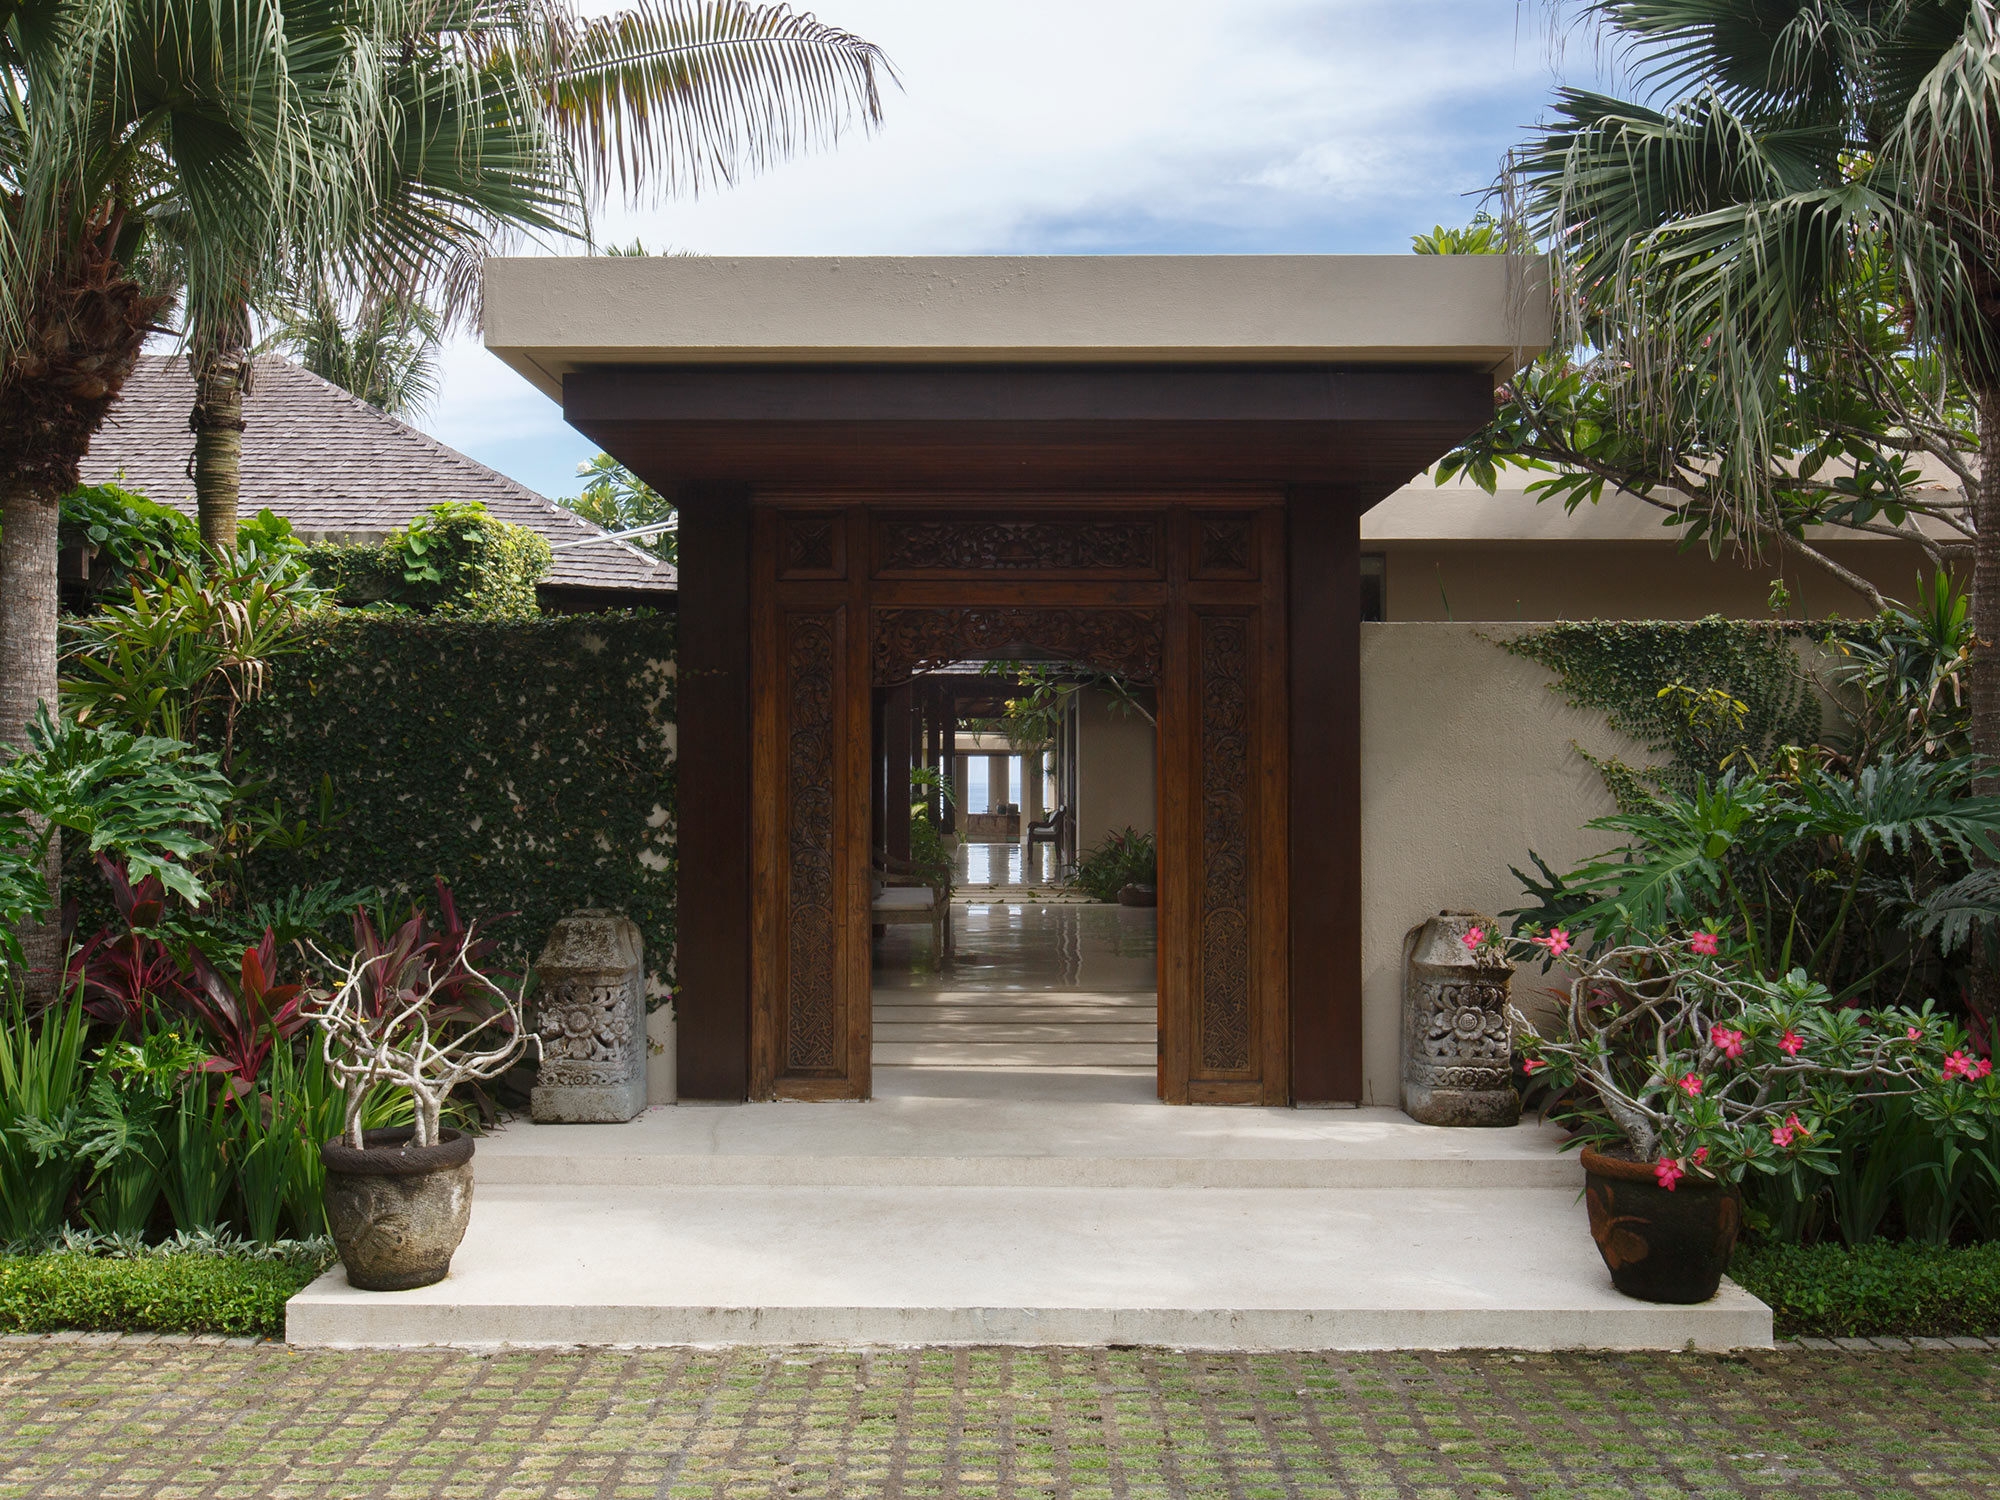 Villa Ambar entrance